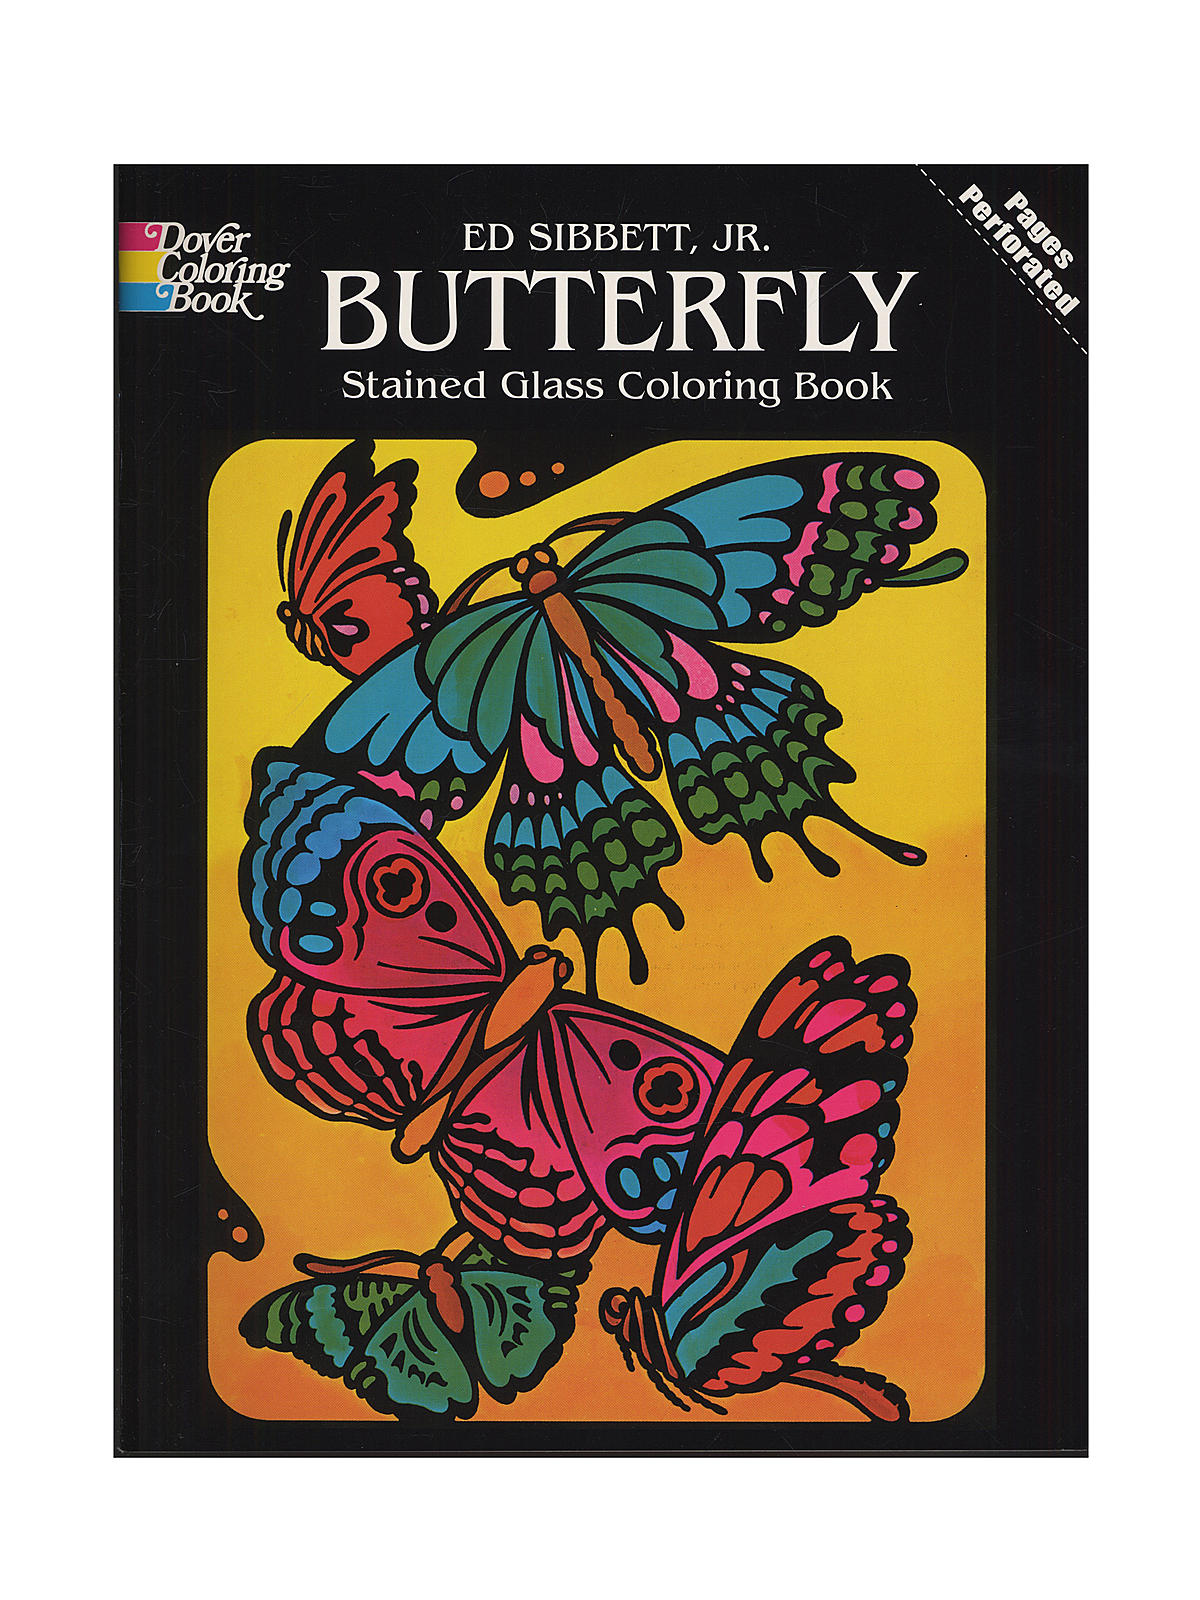 Dover Butterfly Stained Glass Coloring Book